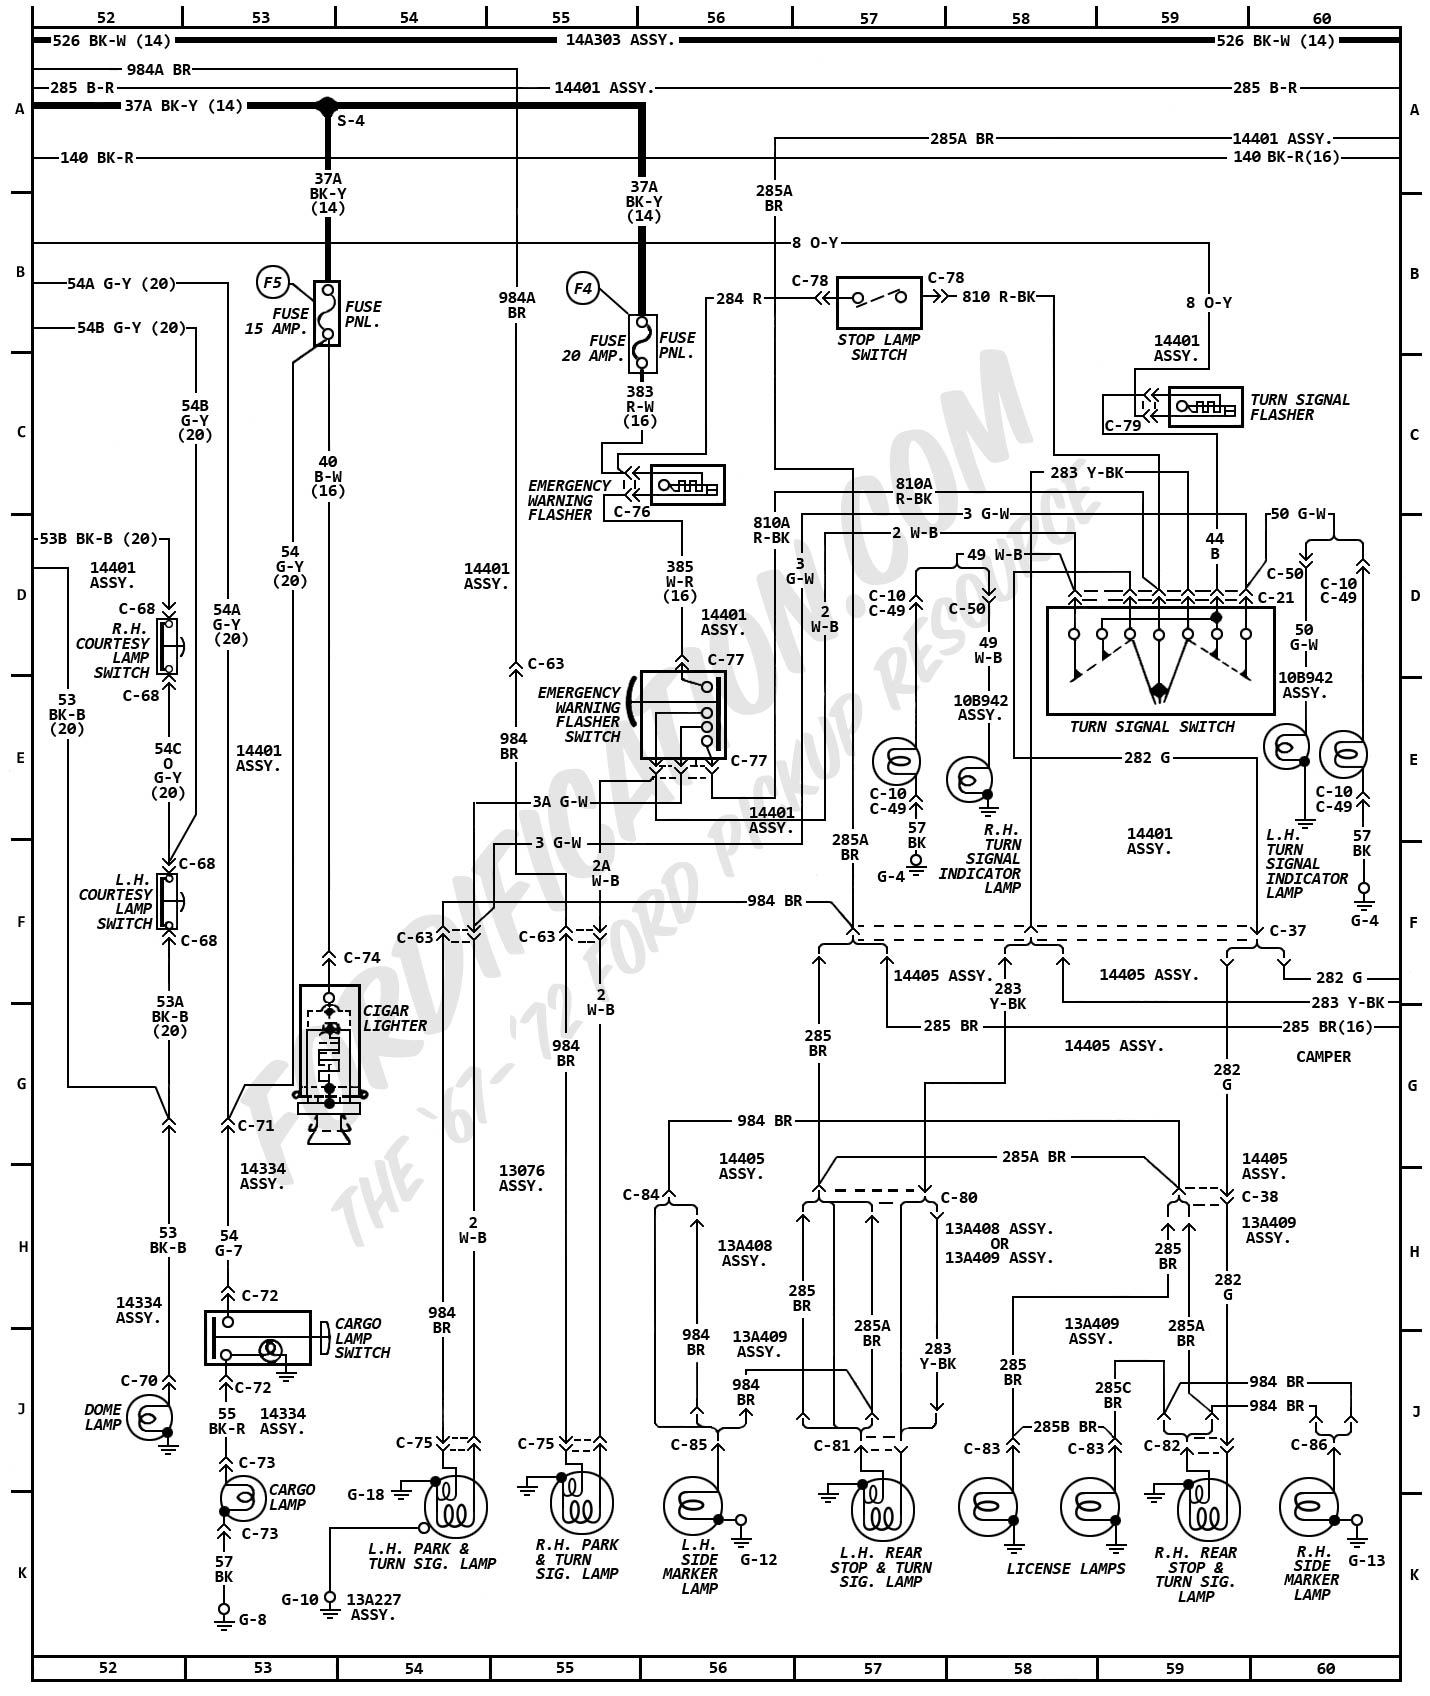 1972 Ford Truck Wiring Diagrams - FORDification.com | Ford F100 Pick Up Wiring Diagrams |  | FORDification.com